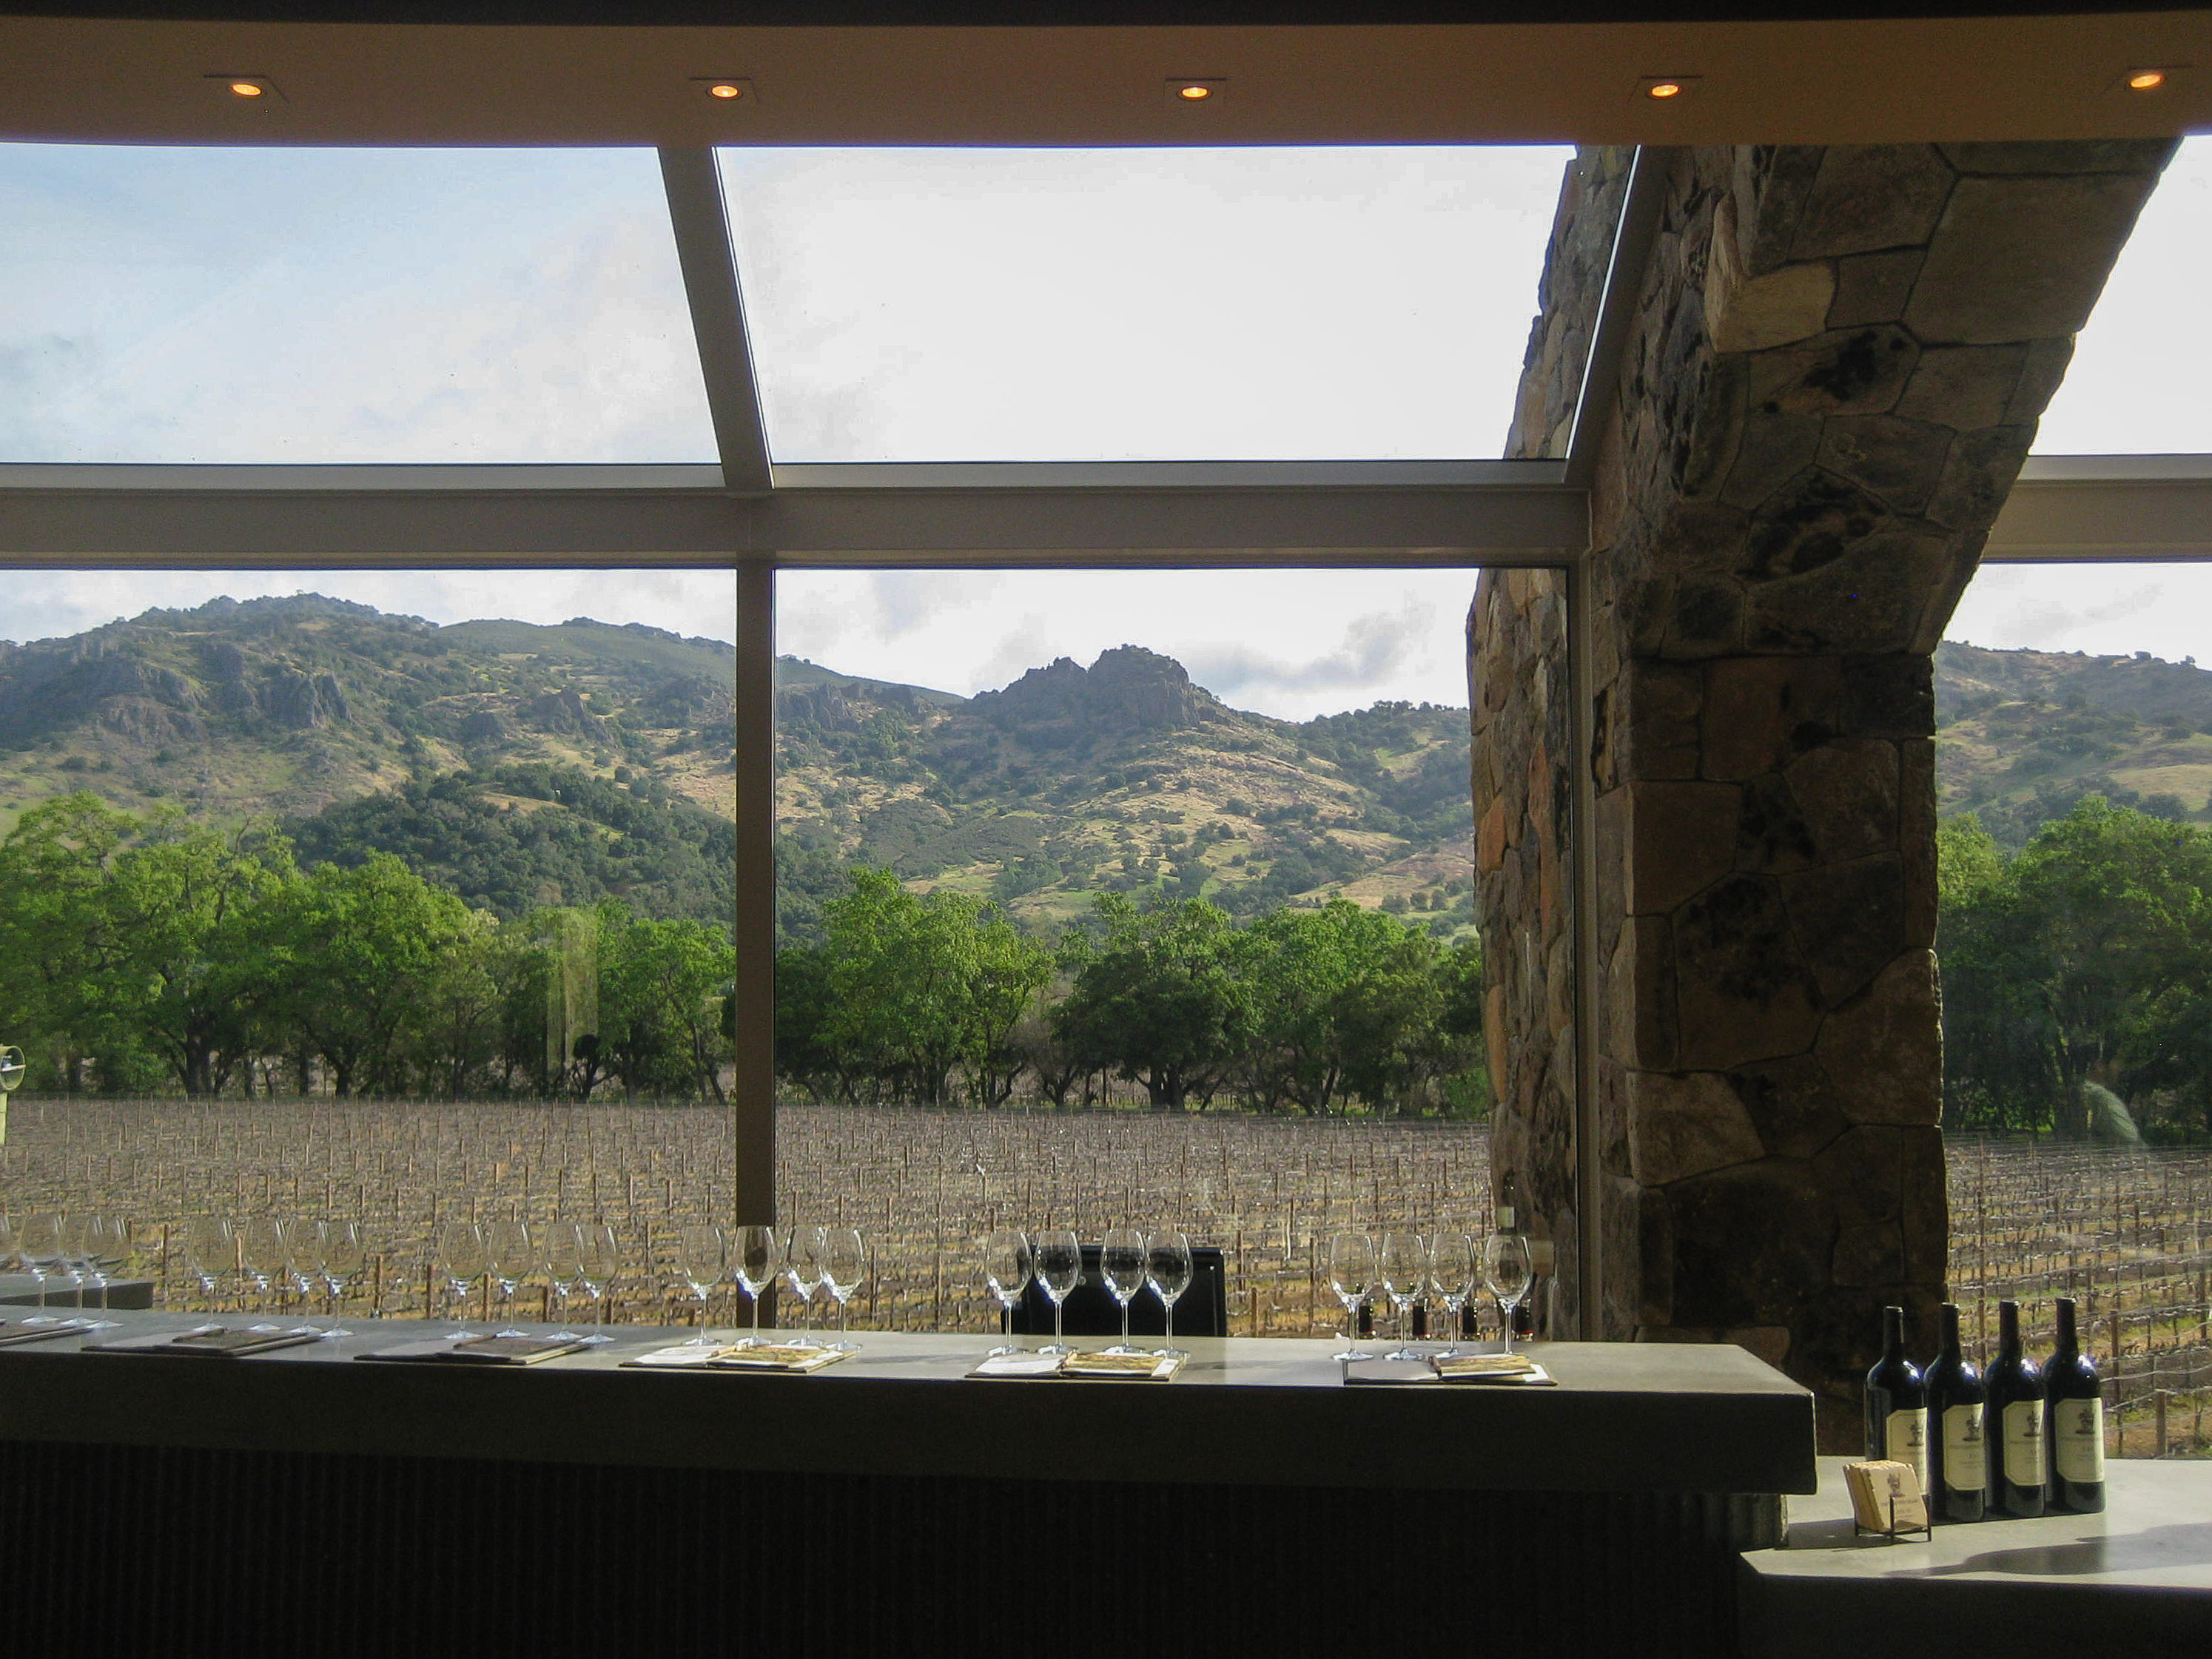 4. SLWC Wine Tasting with a View